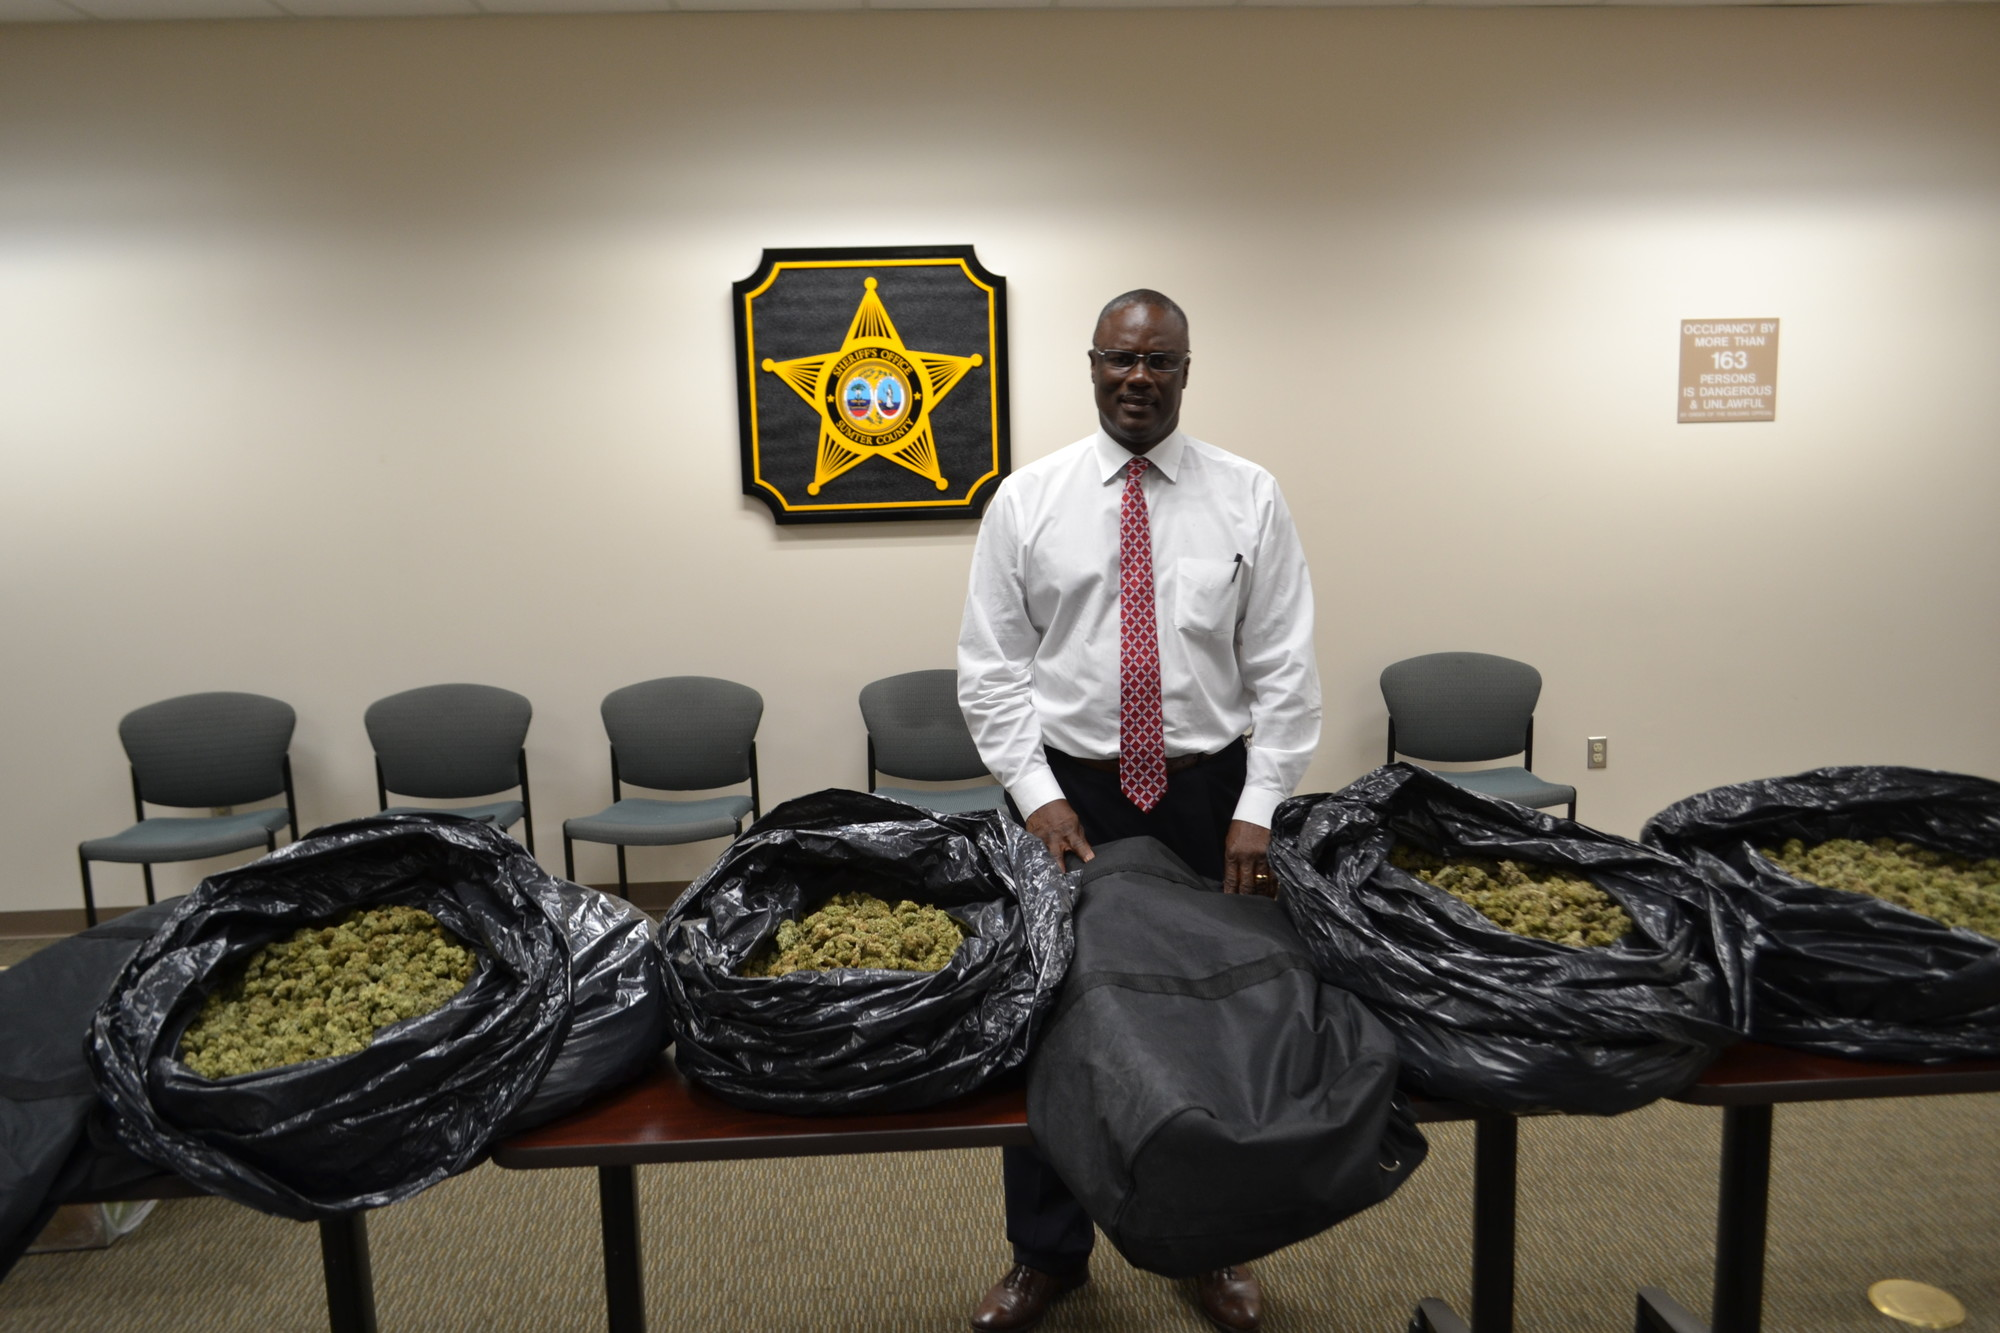 Sumter County Sheriff Anthony Dennis stands with some of the marijuana seized during Operation Ice Storm.